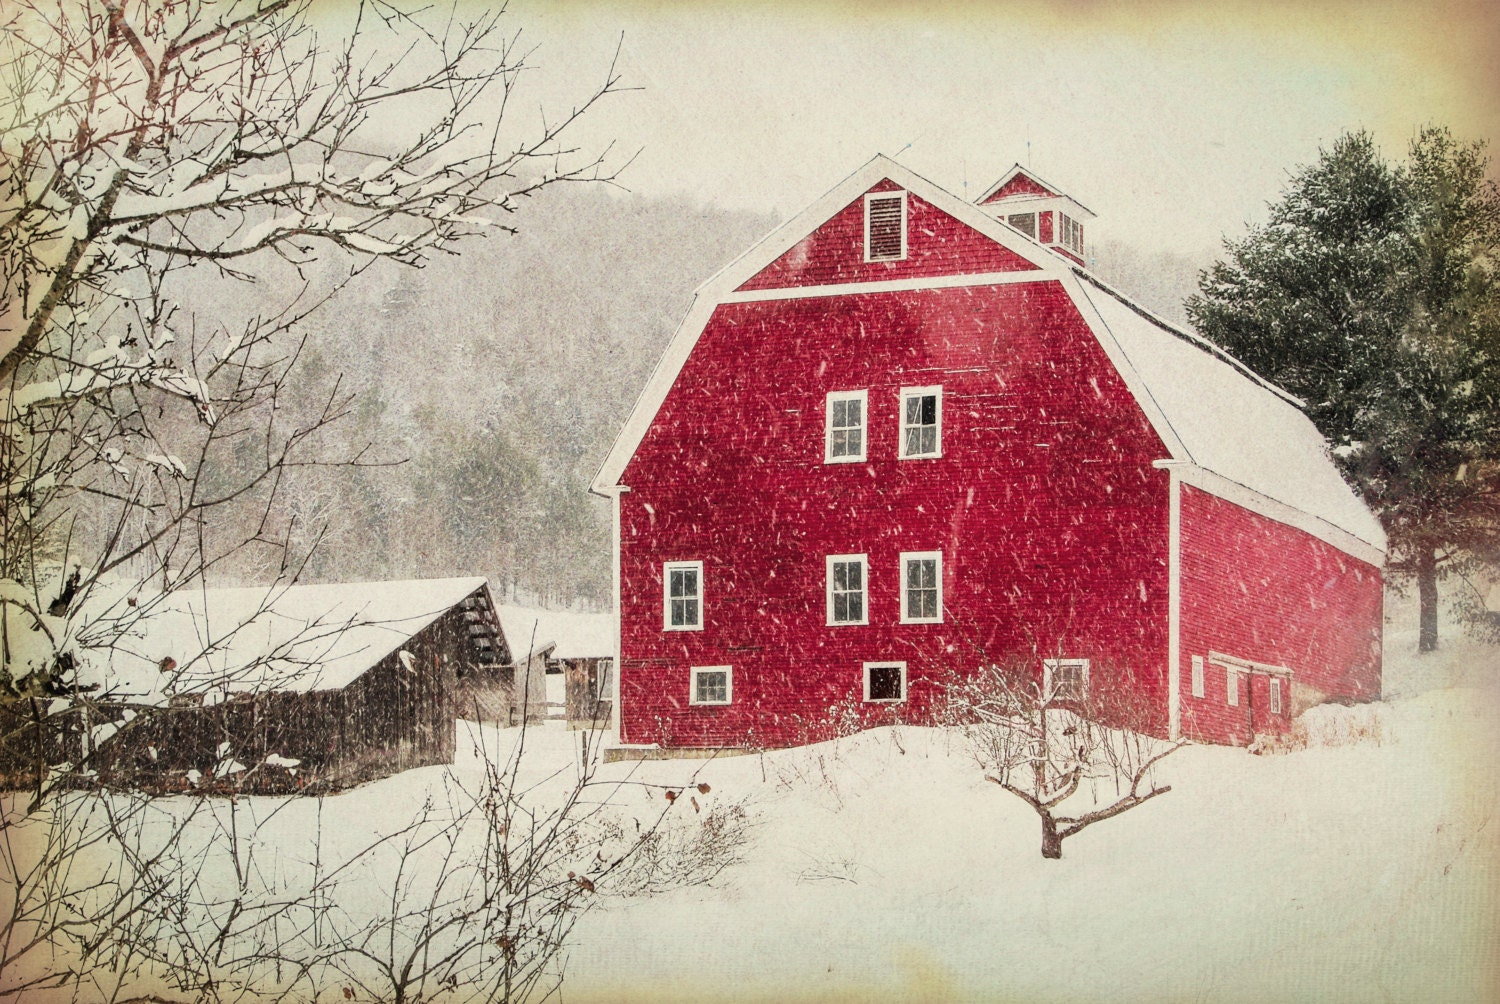 The Red Barn Christmas Scenery Antique Barn Winter Snow